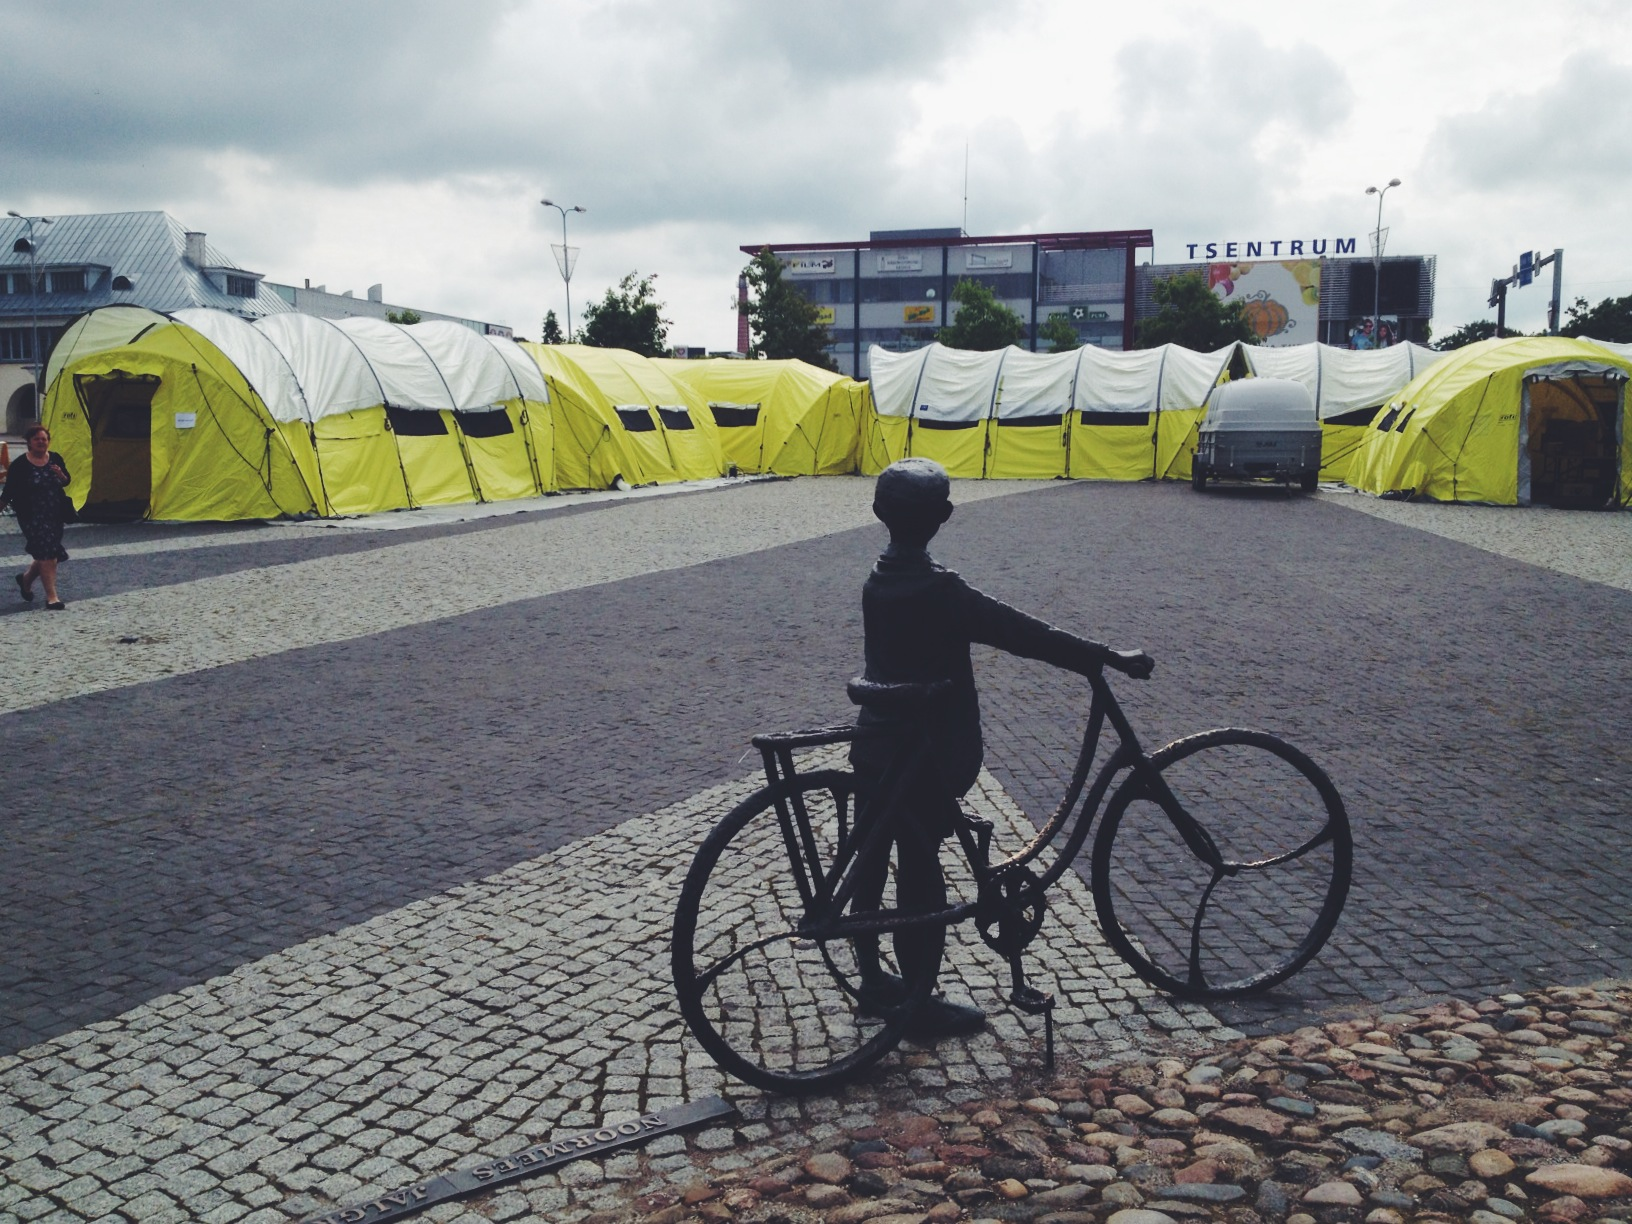 Donor tents in Estonia Rakvere